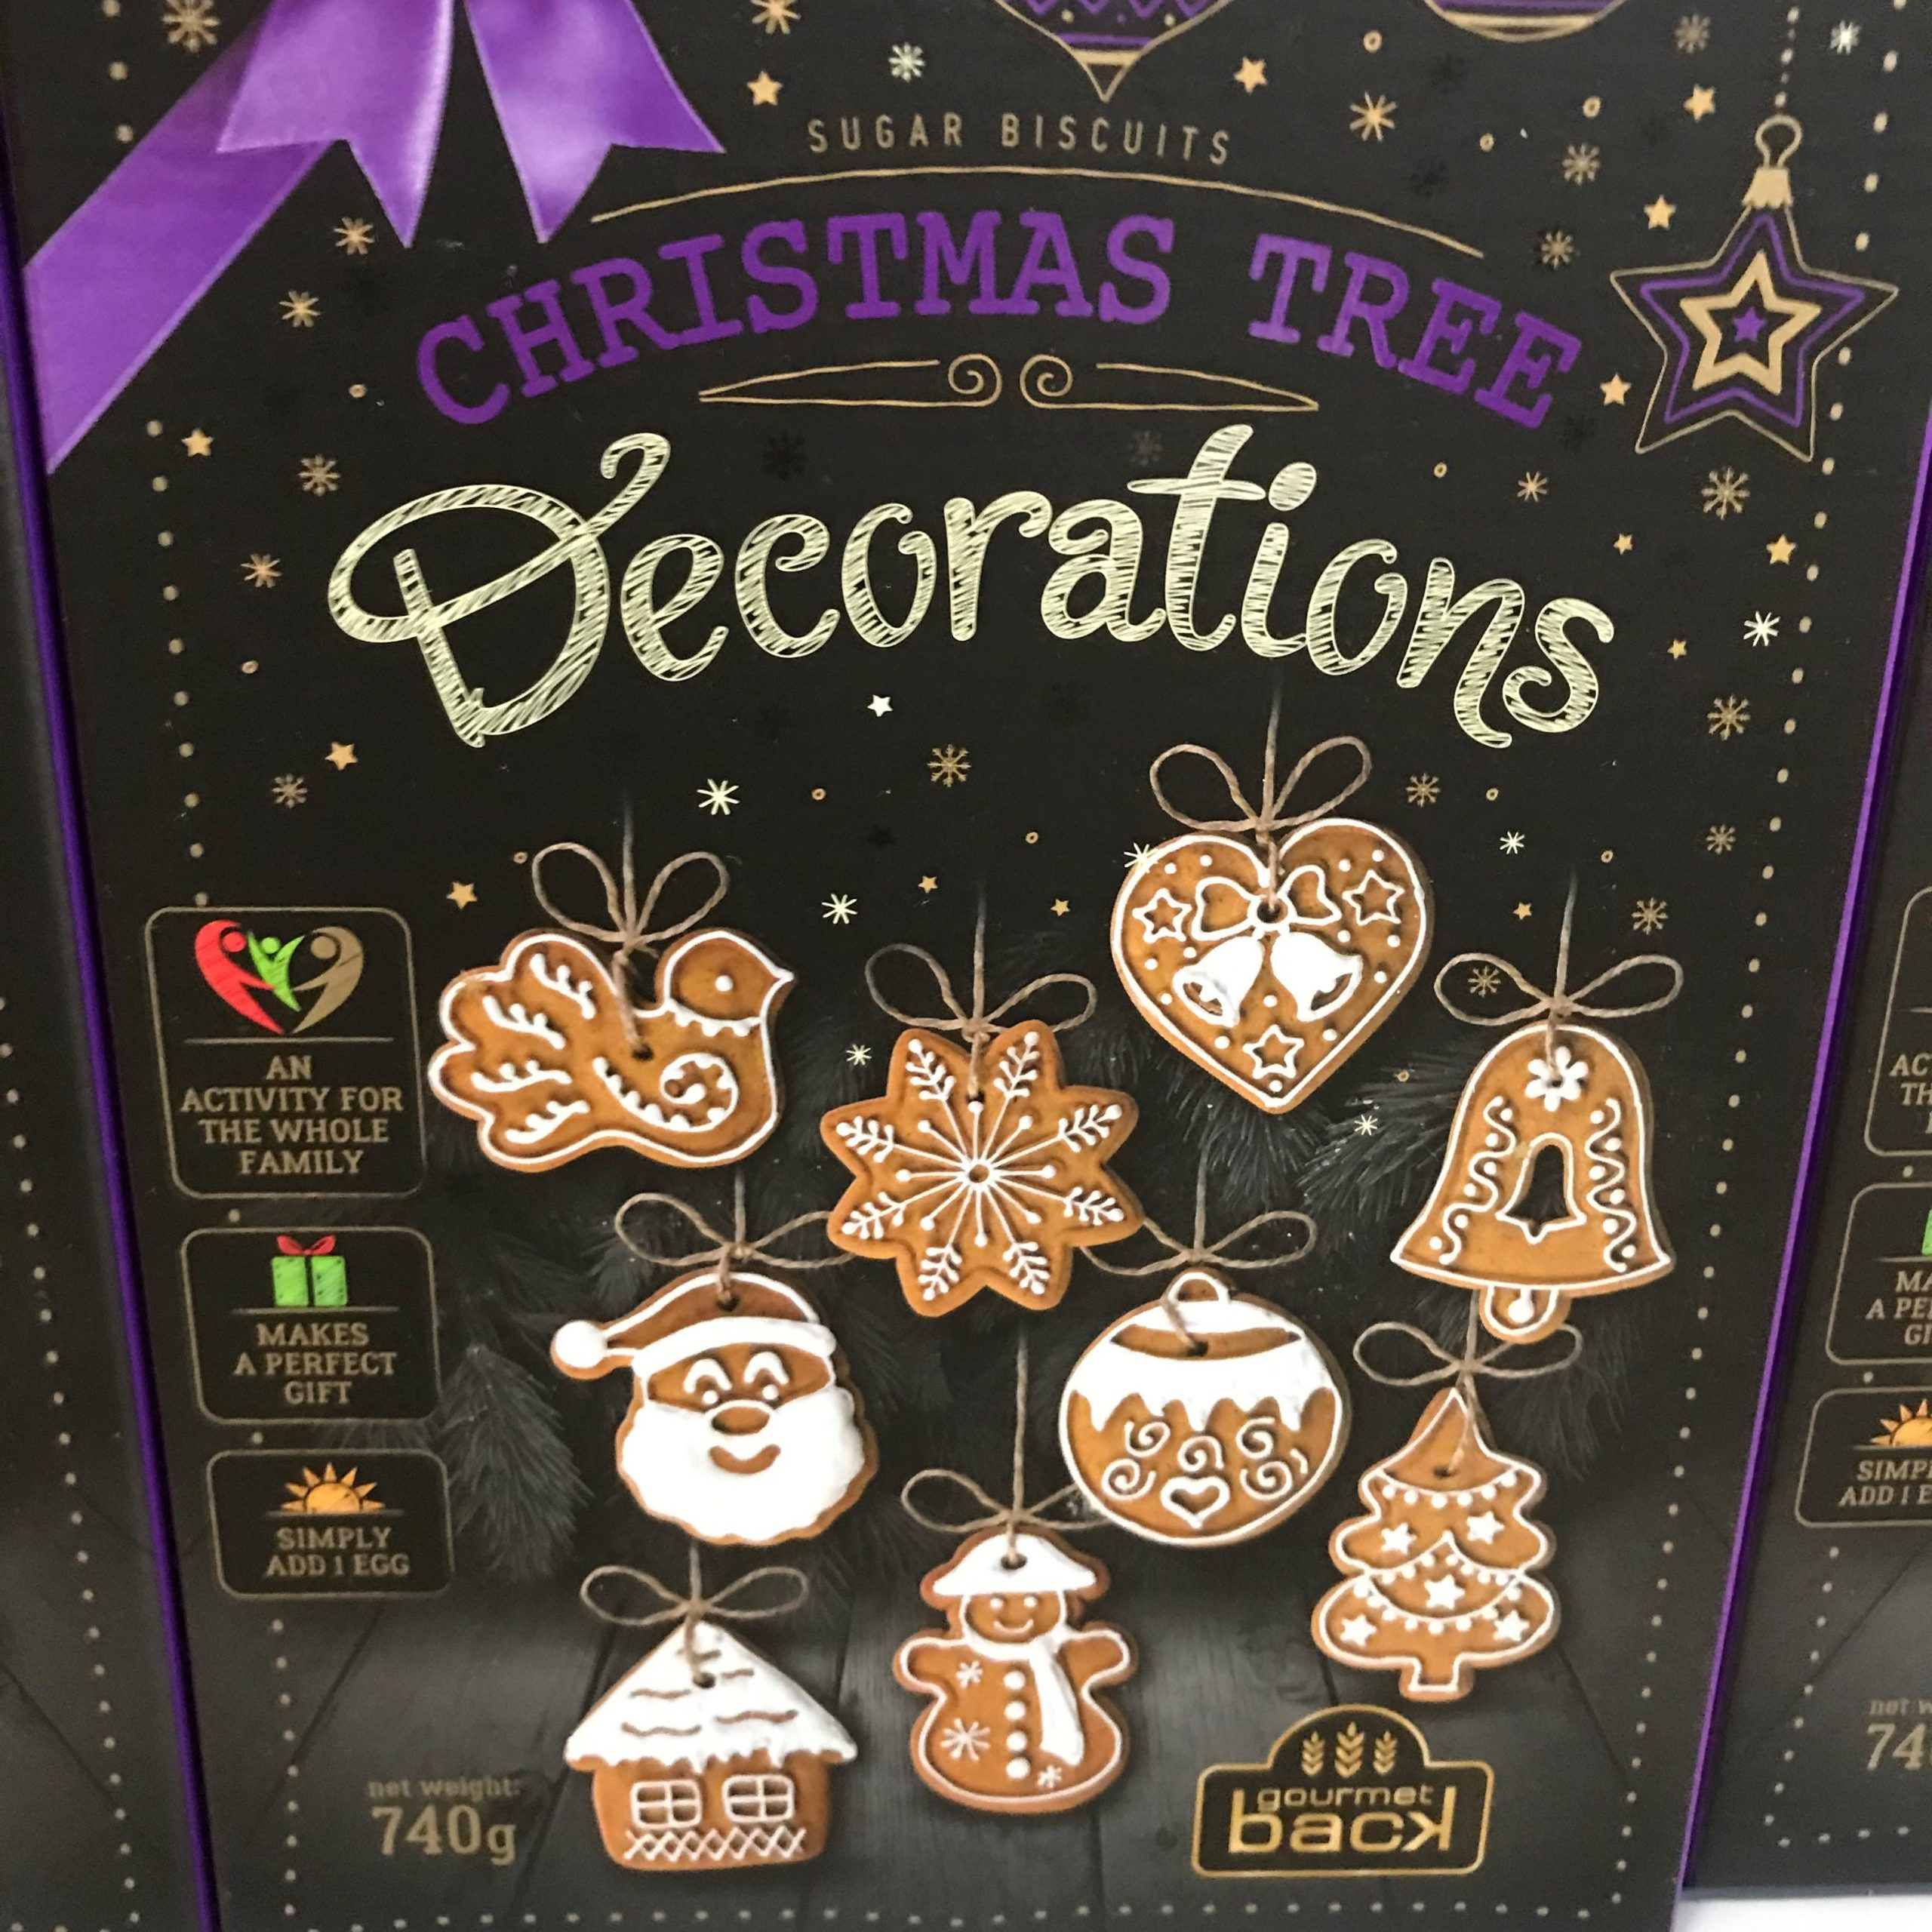 Treat Kitchen Make Your Own Gingerbread Christmas Tree Decorations Kit 740g Farmers Fayre